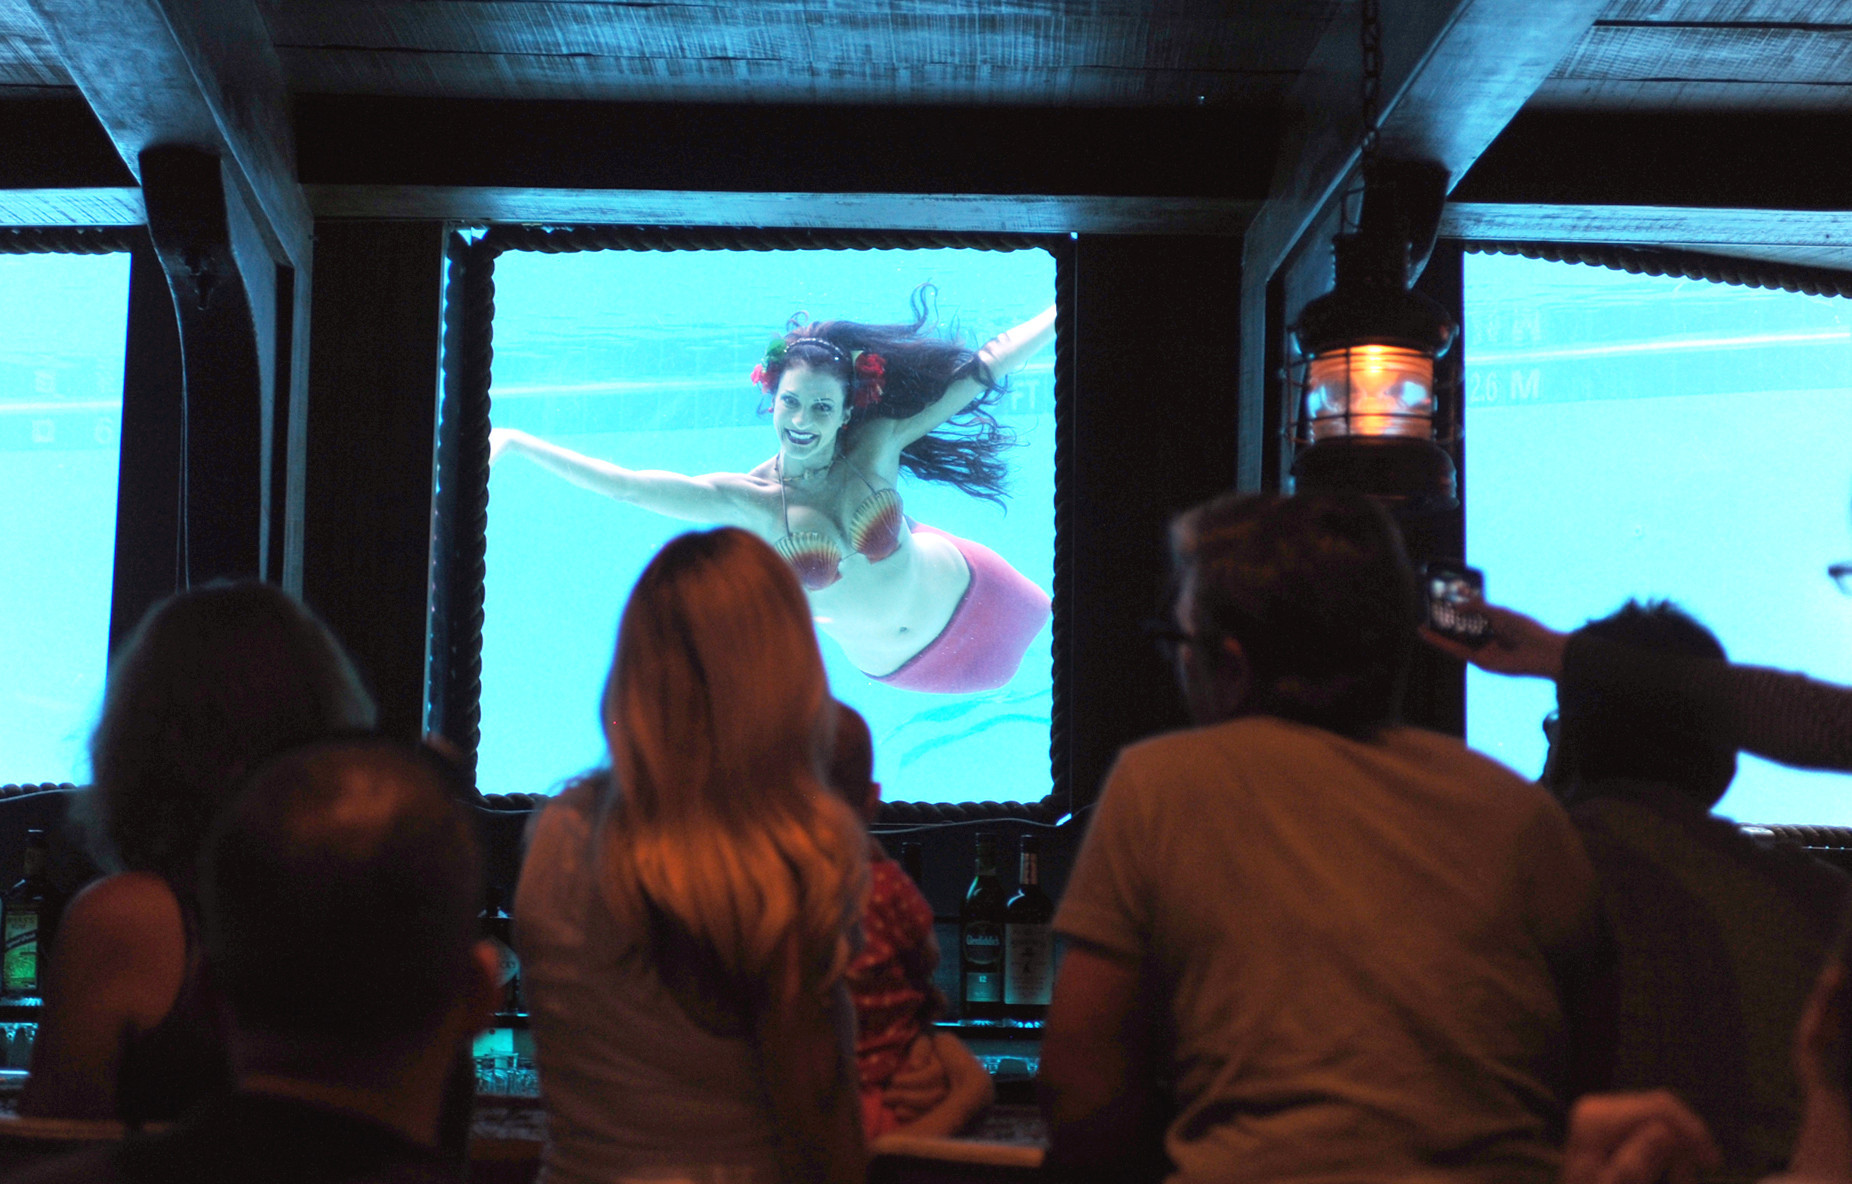 Things every South Floridian should do once - The mermaid show at The Wreck Bar